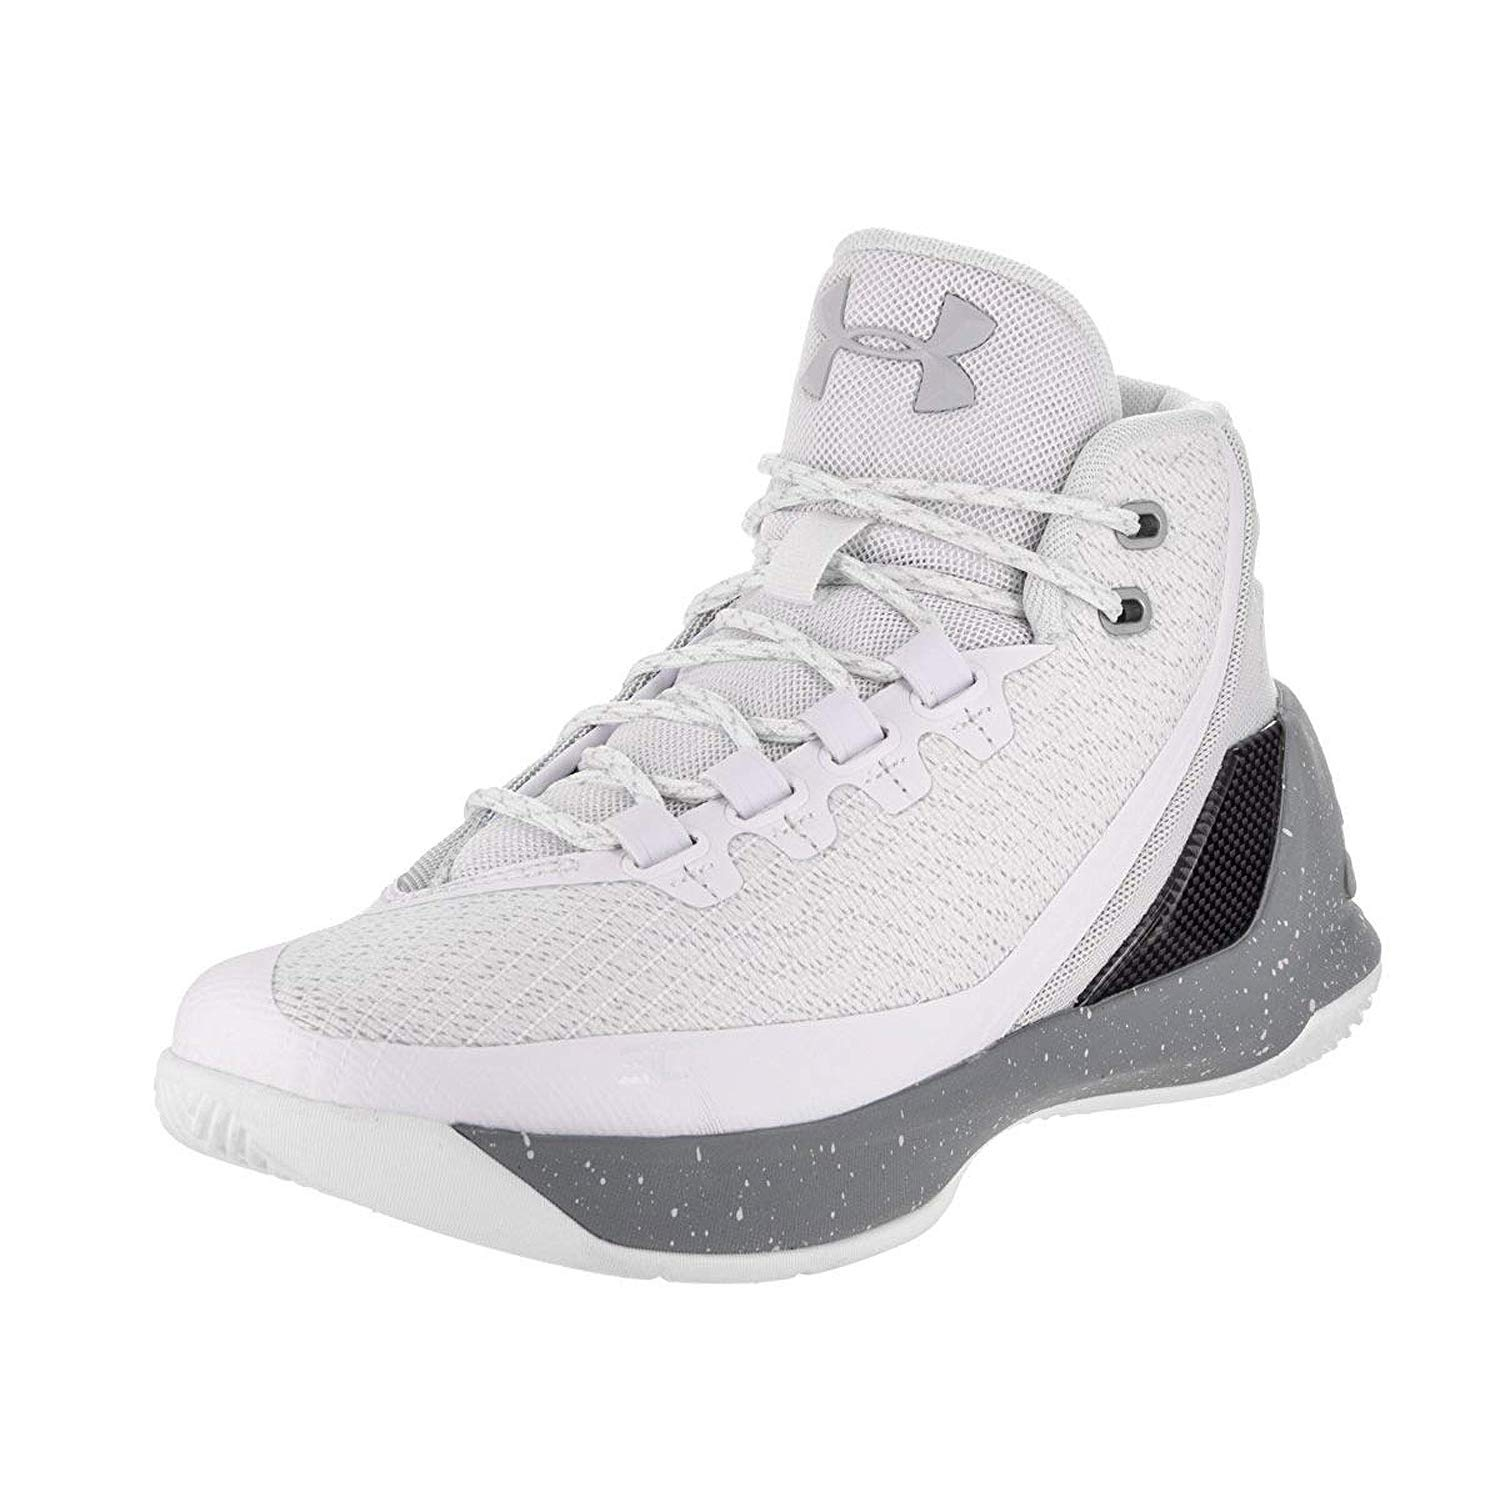 Under Armour Curry 3 (Kids)